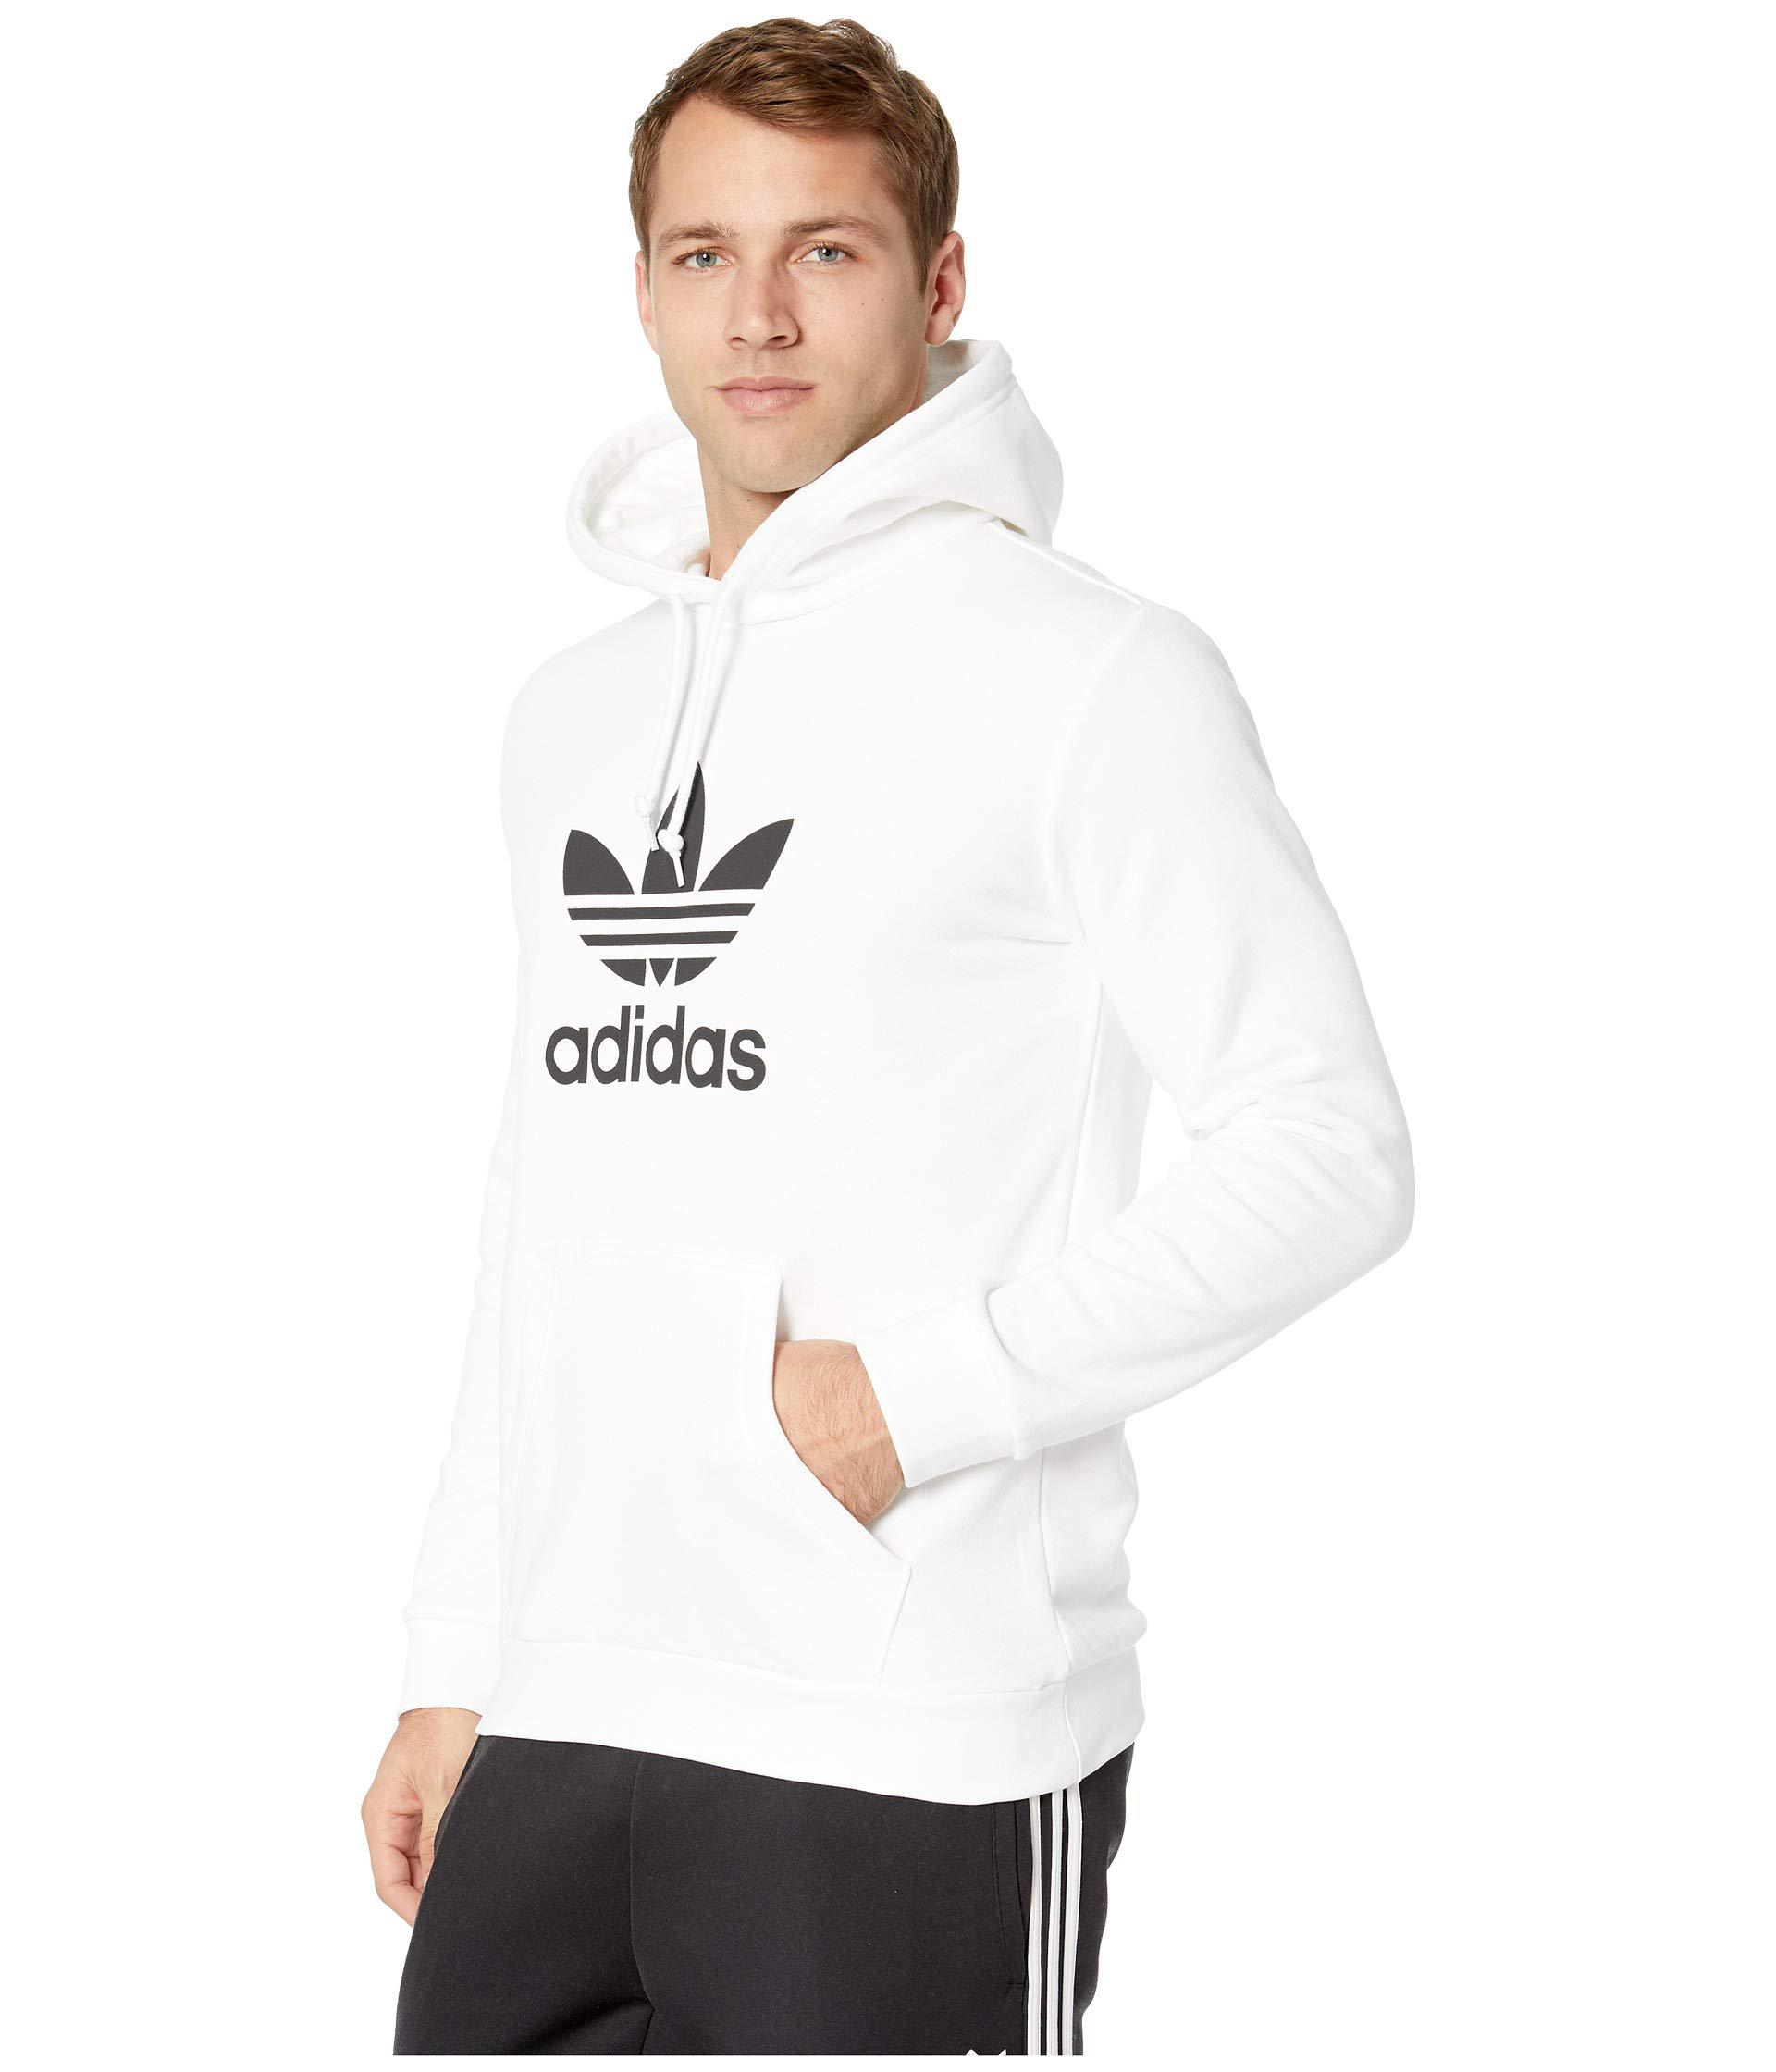 c216a810cb98 Lyst - adidas Originals Trefoil Hoodie (medium Grey Heather) Men s  Sweatshirt in White for Men